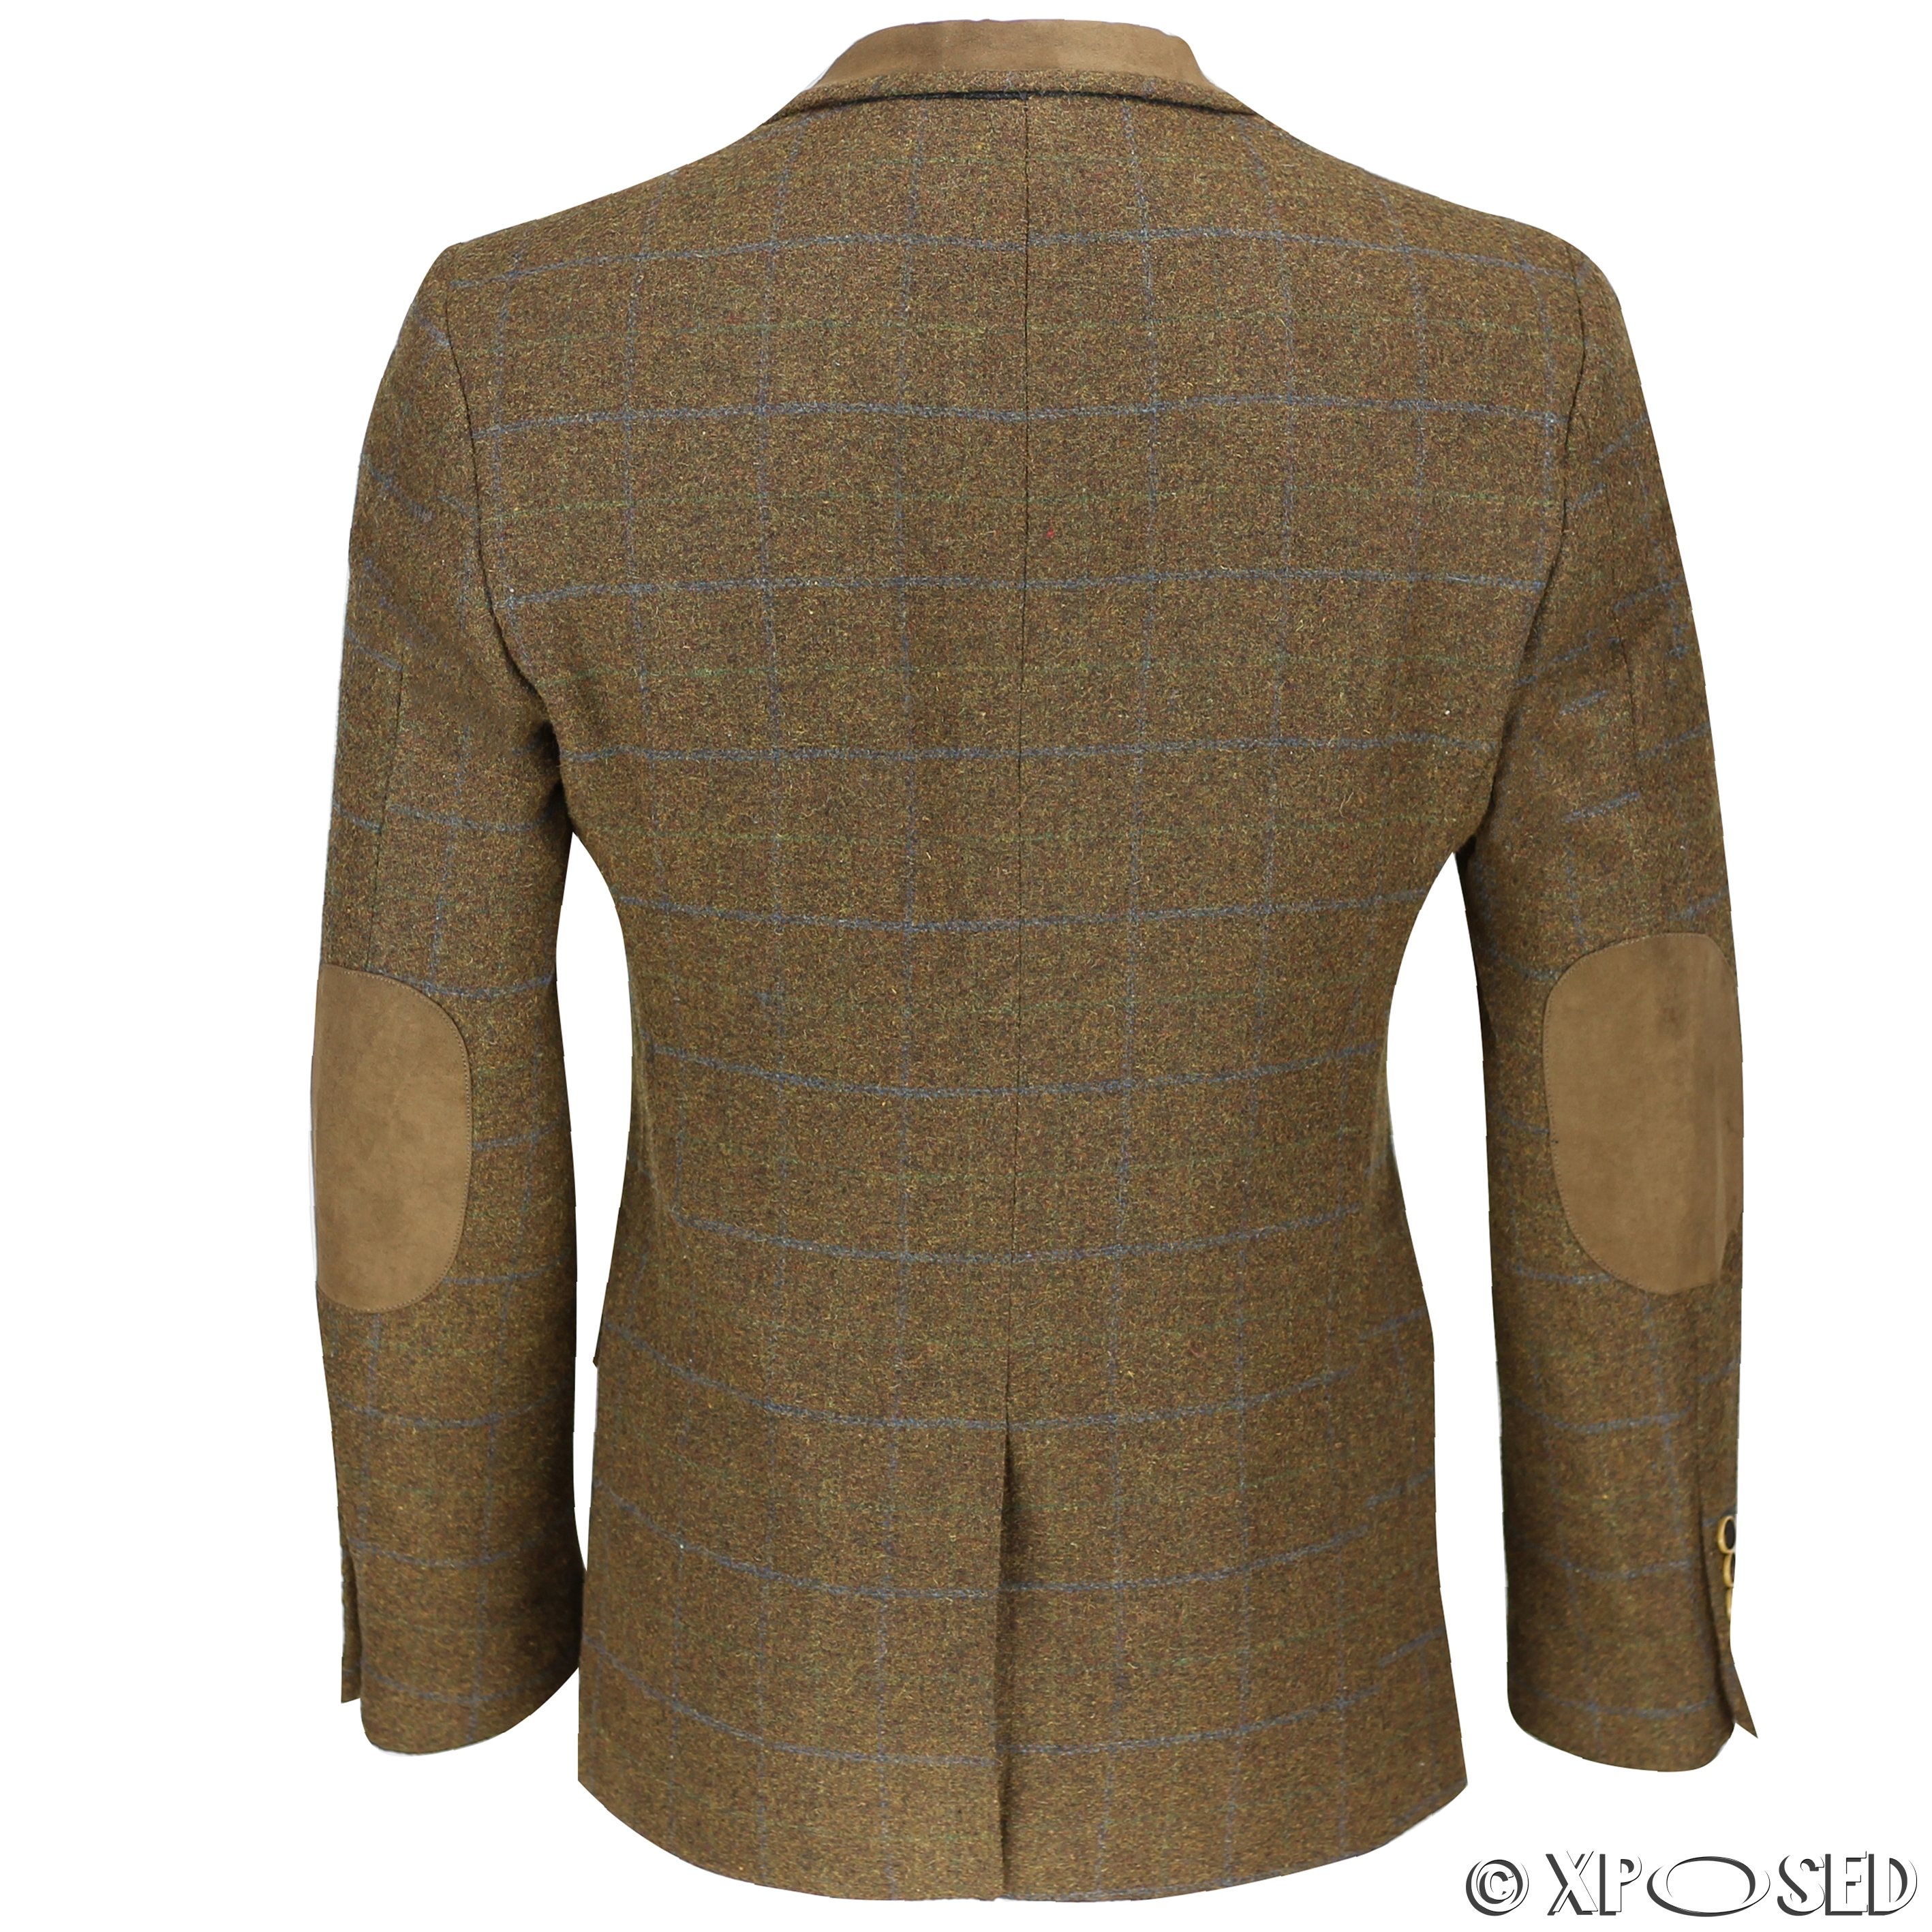 Blazers Jackets Mens: Mens Vintage Tweed Herringbone Check Blazer In Grey Brown